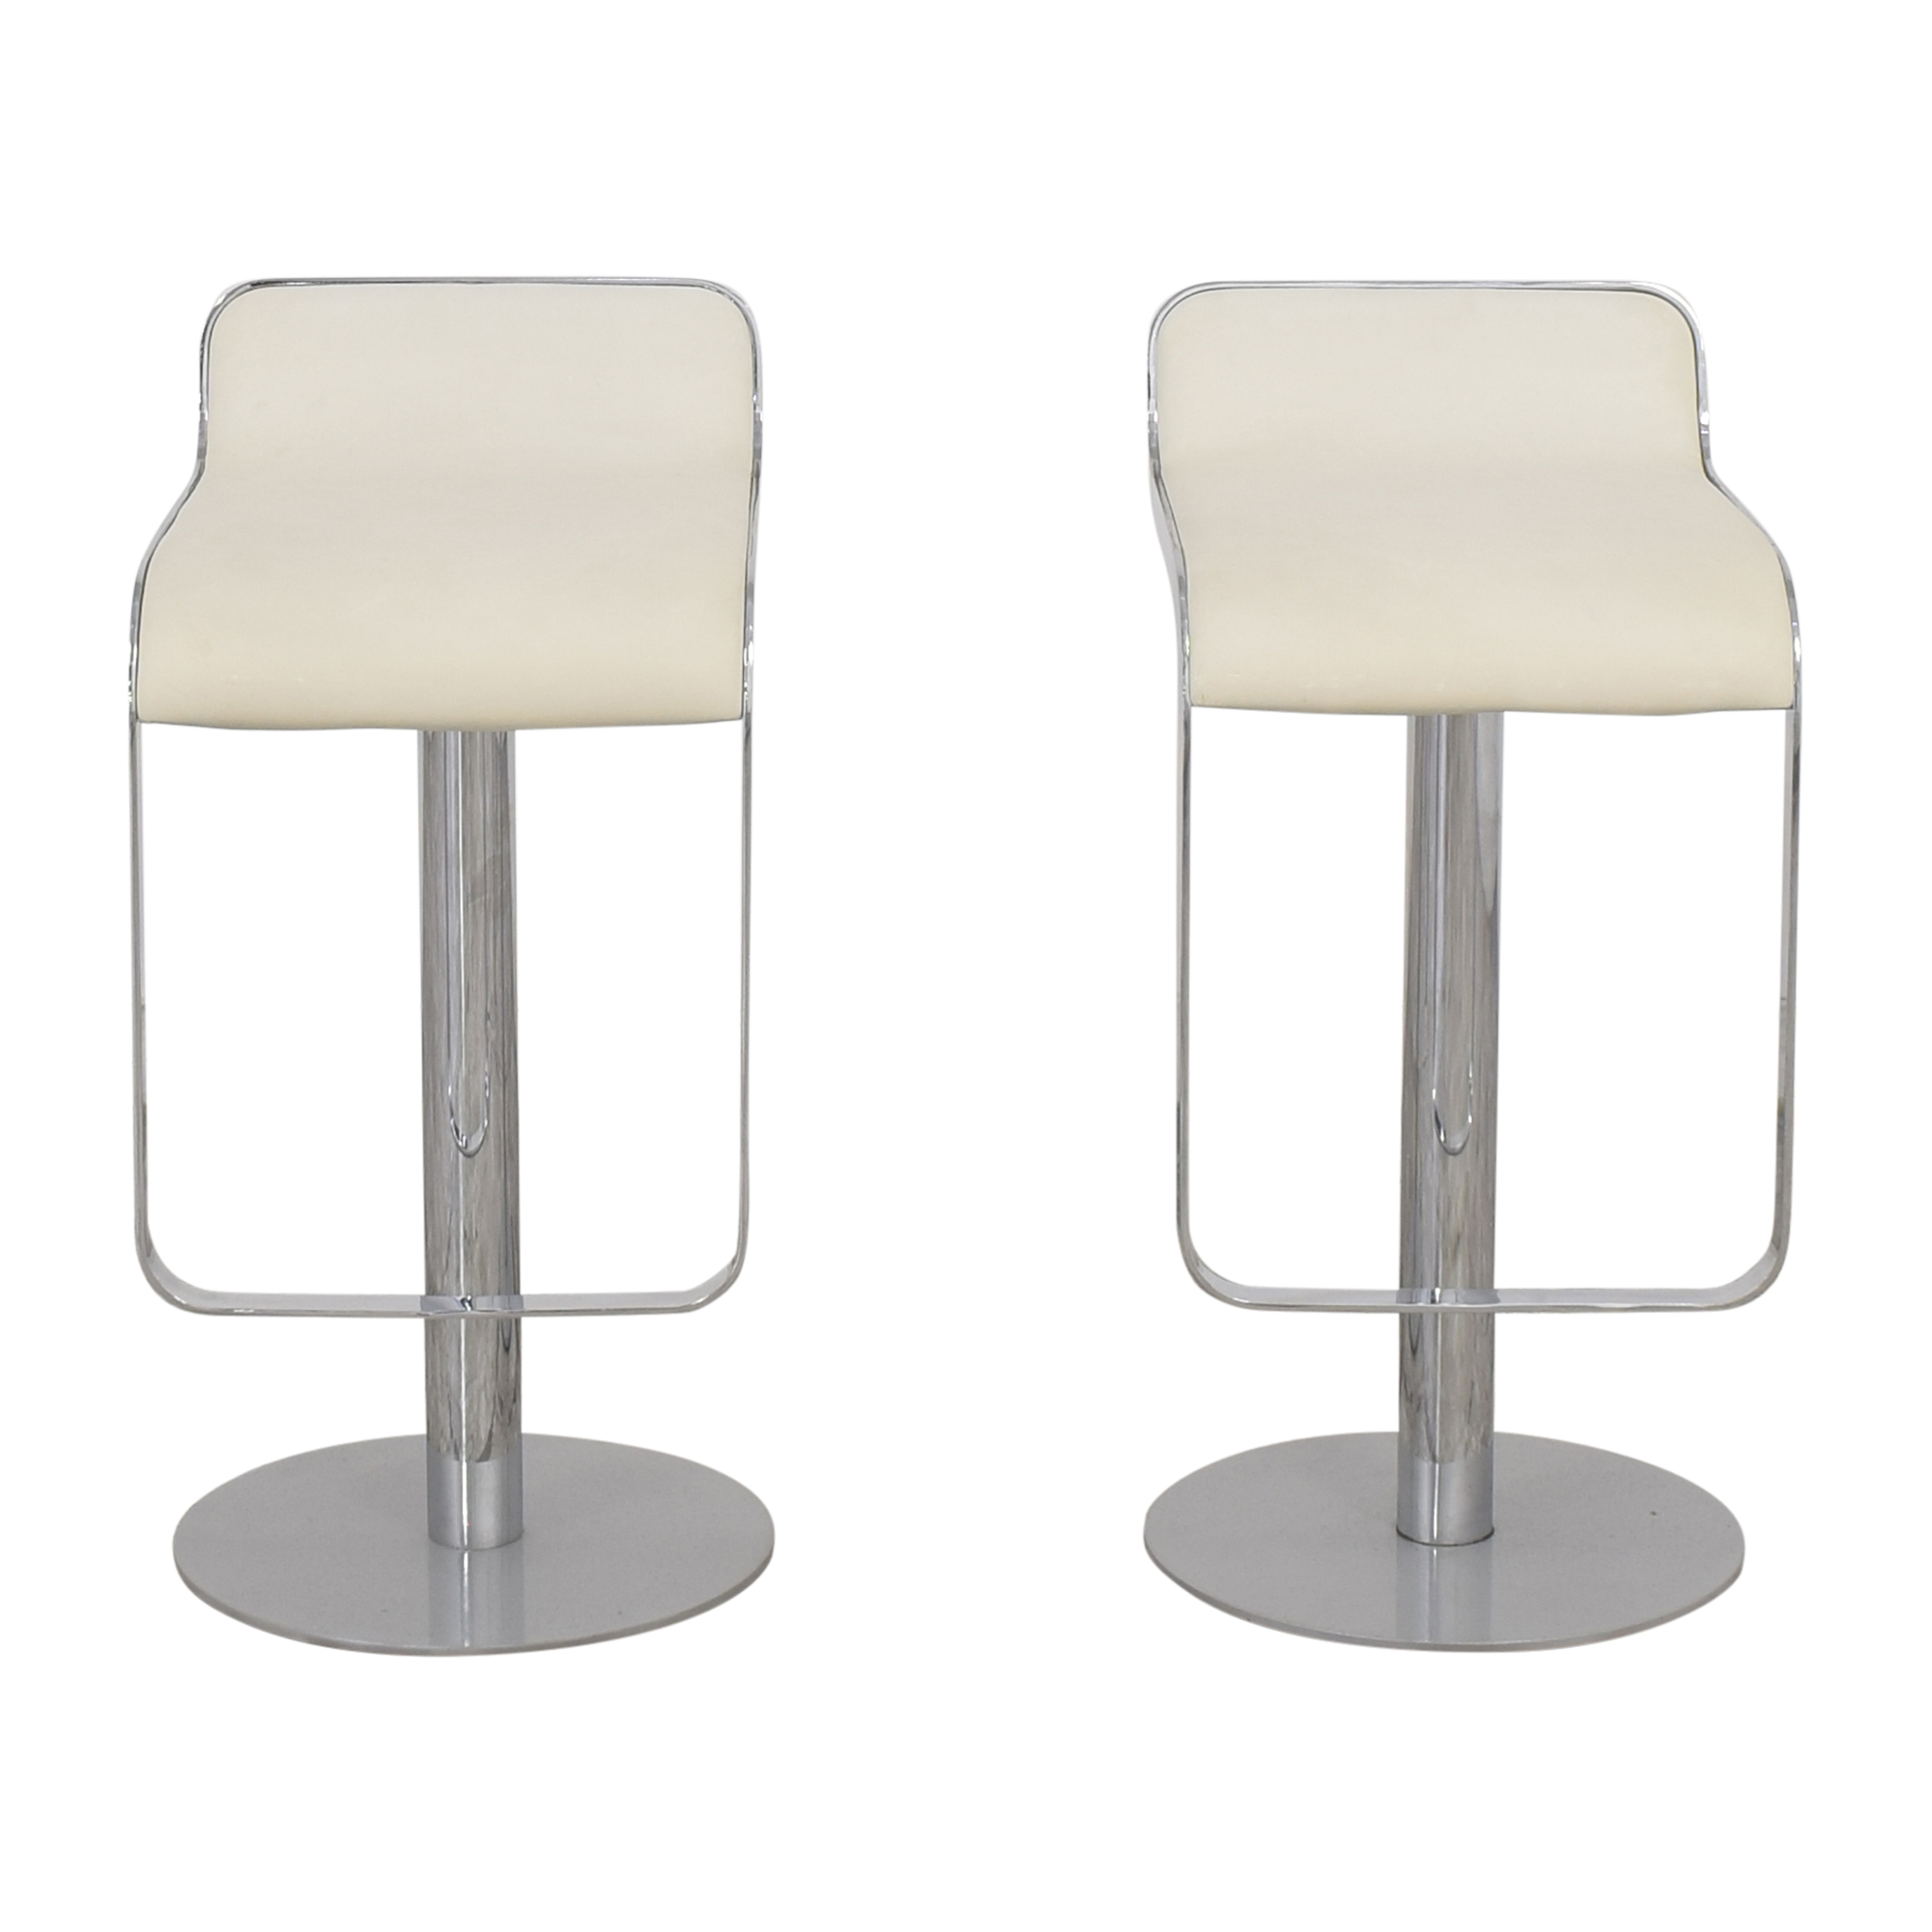 Adjustable Bar Stools ct